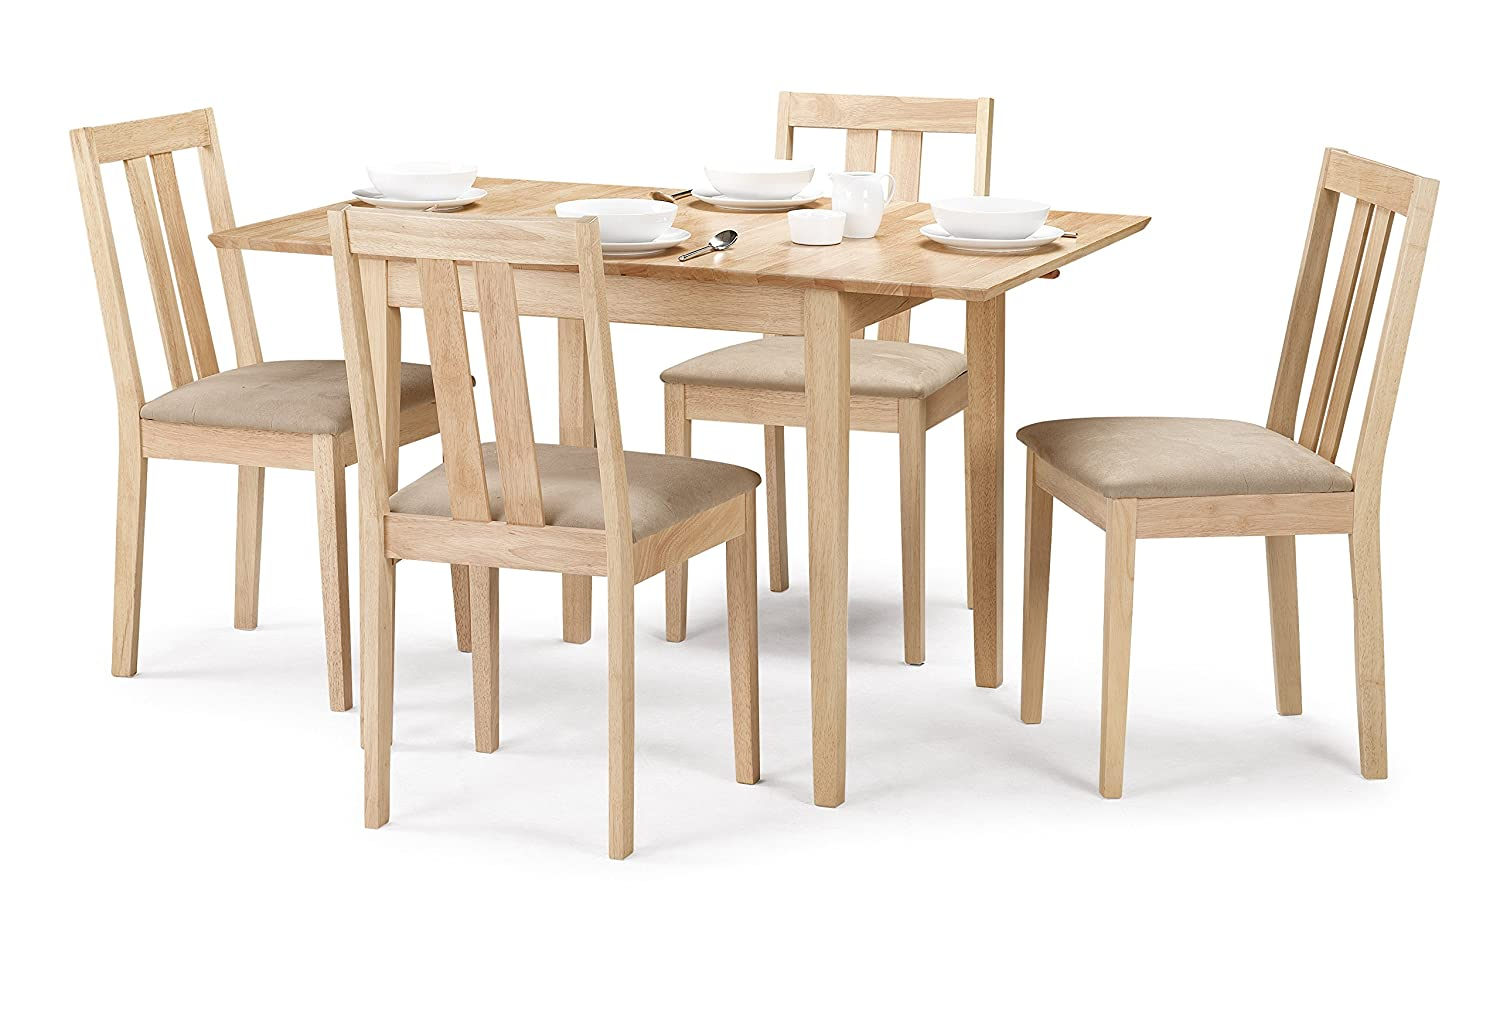 Outstanding Julian Bowen Rufford Extending Dining Table Set With 4 Chairs Light Wood Download Free Architecture Designs Viewormadebymaigaardcom